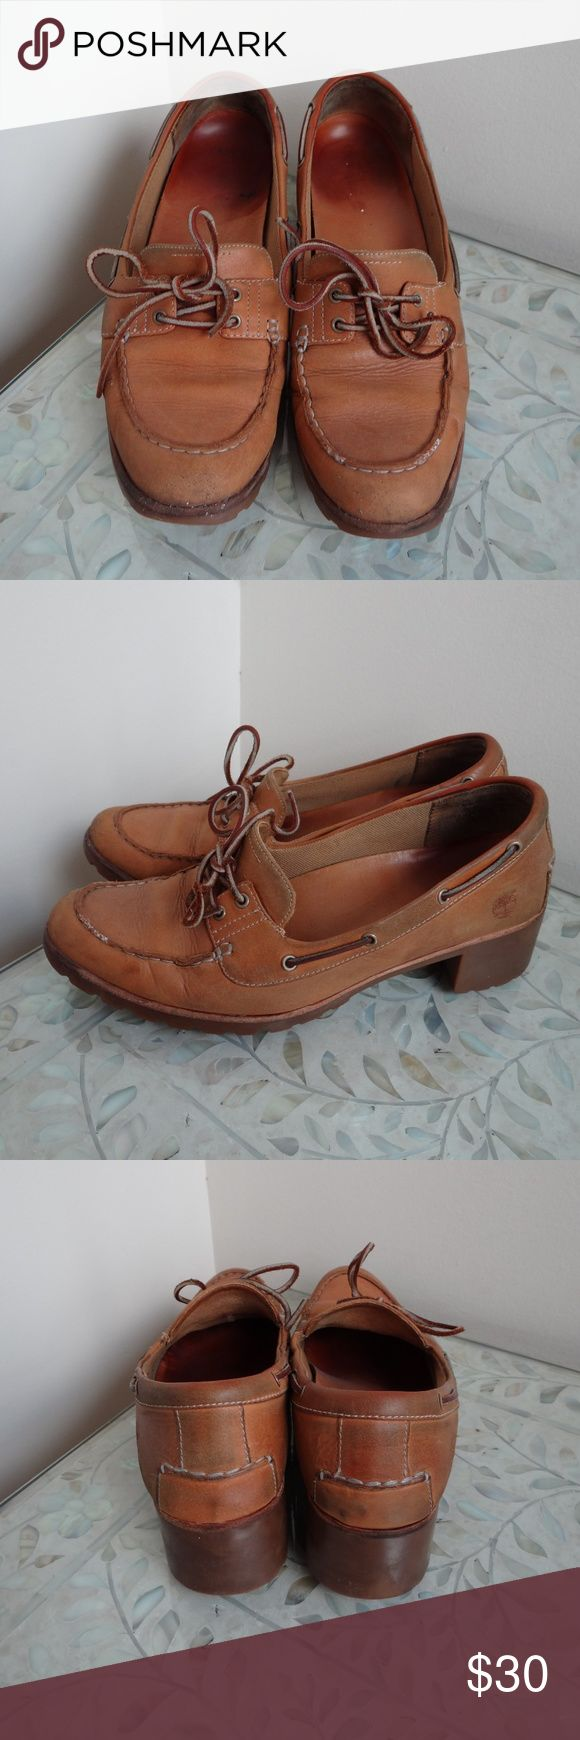 Timberland Bergen Boat Shoe 9.5 beige tan Timberland Bergen Boat Shoe size 9.5 color beige, tan very good condition 1.77 inch heel (4,5 cm) comes from a smoke- and pet-free home offers are welcome Timberland Shoes Slippers